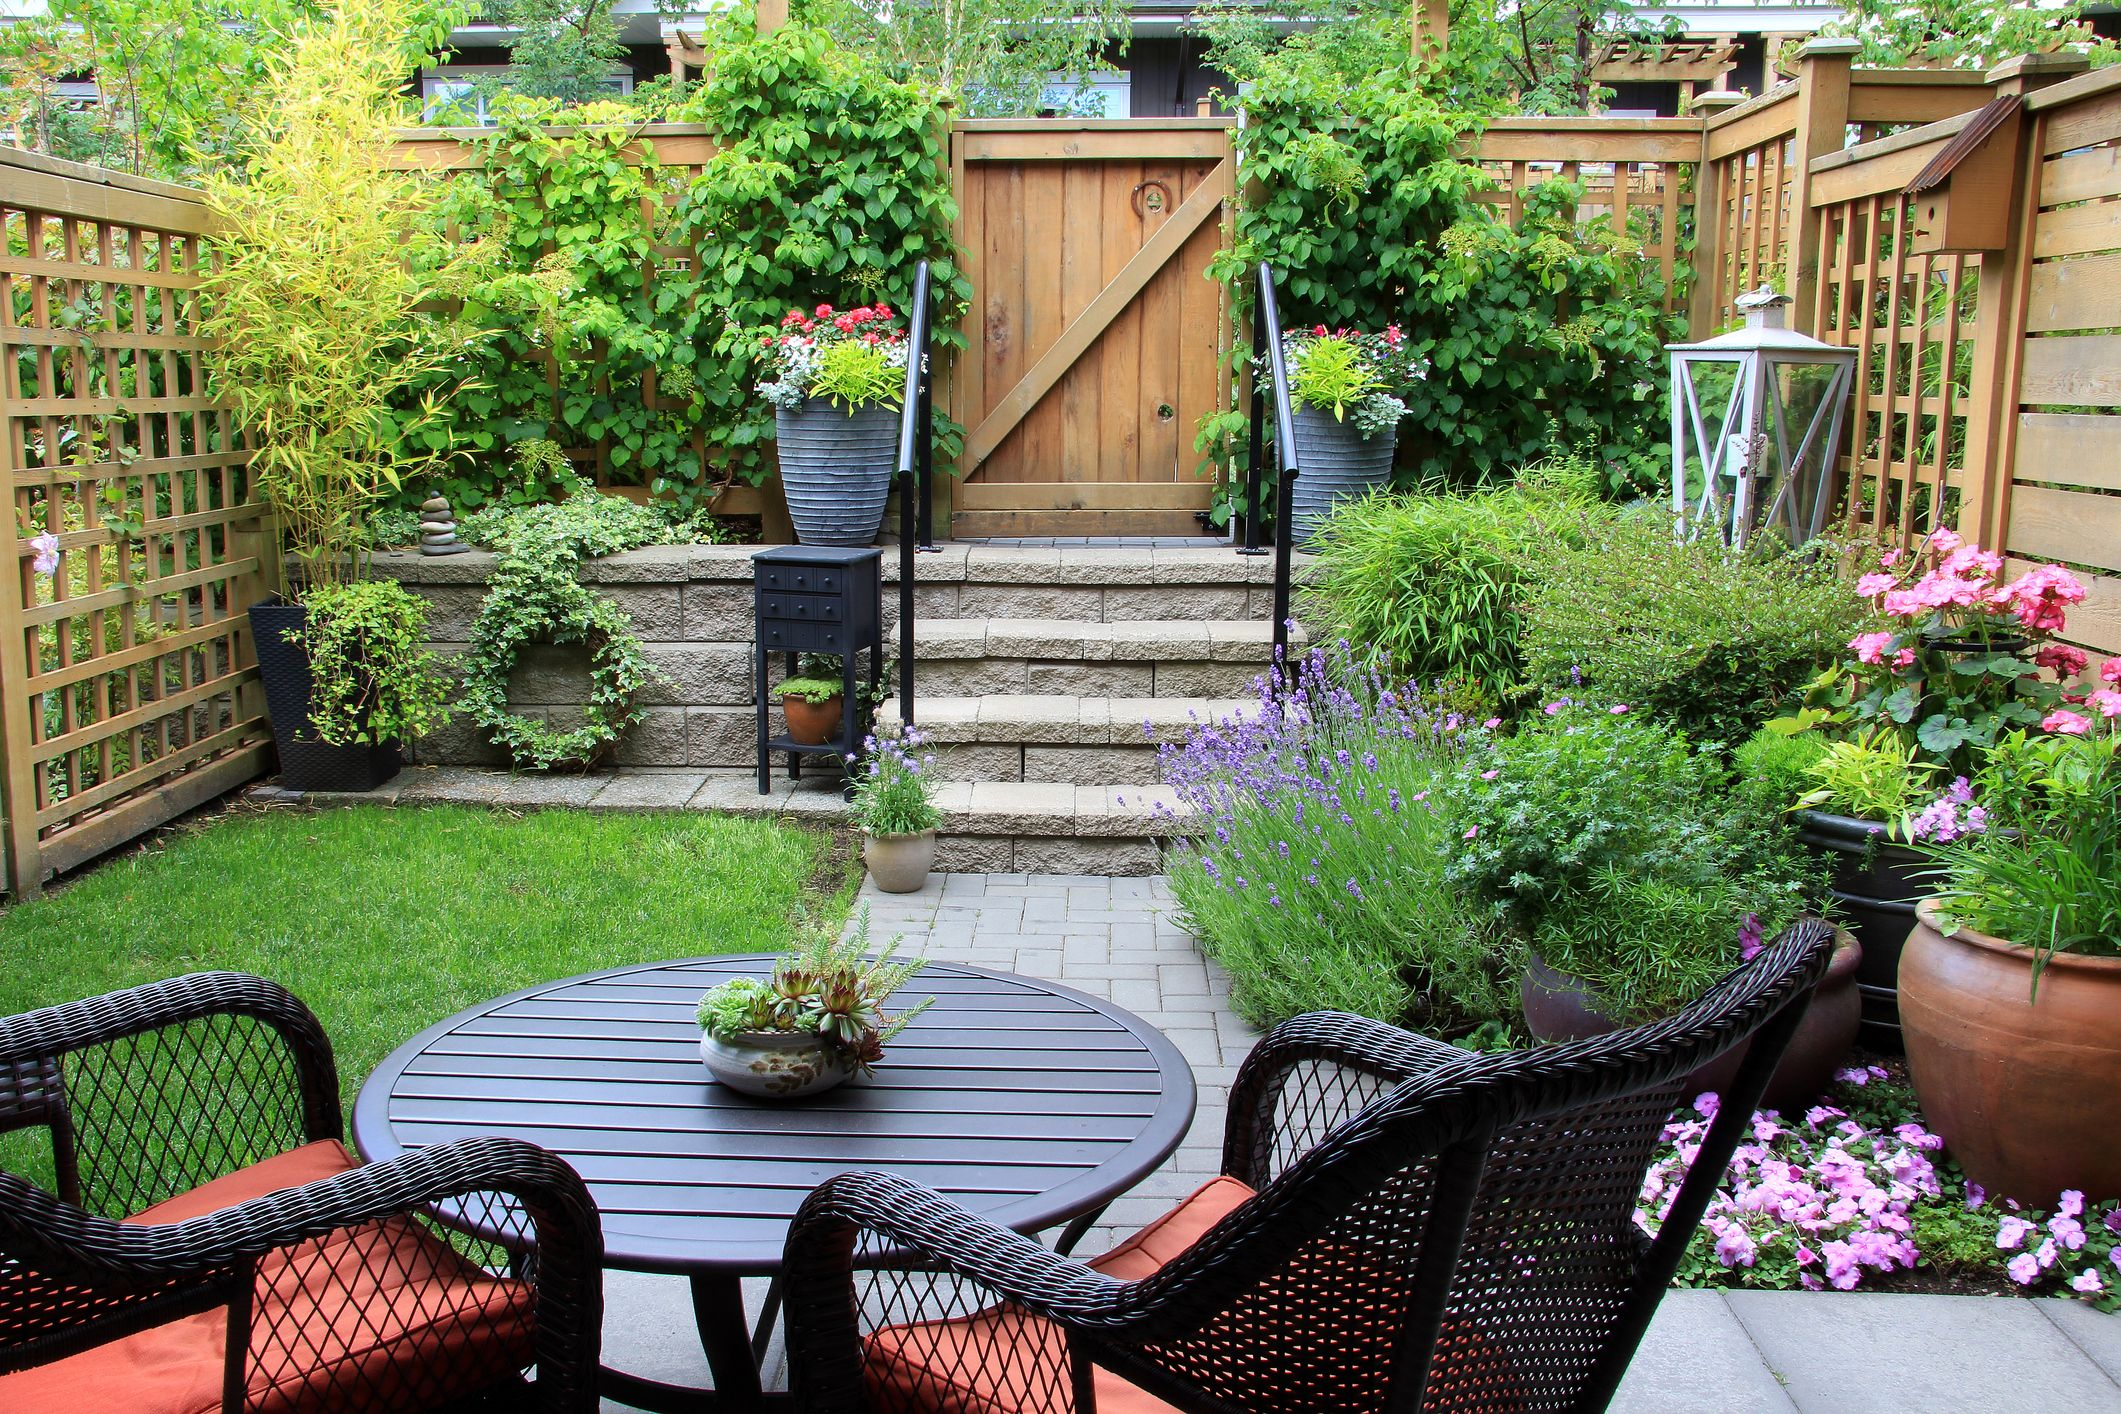 Awesome Small Townhouse Garden With Patio Furniture Amidst Blooming Lavender